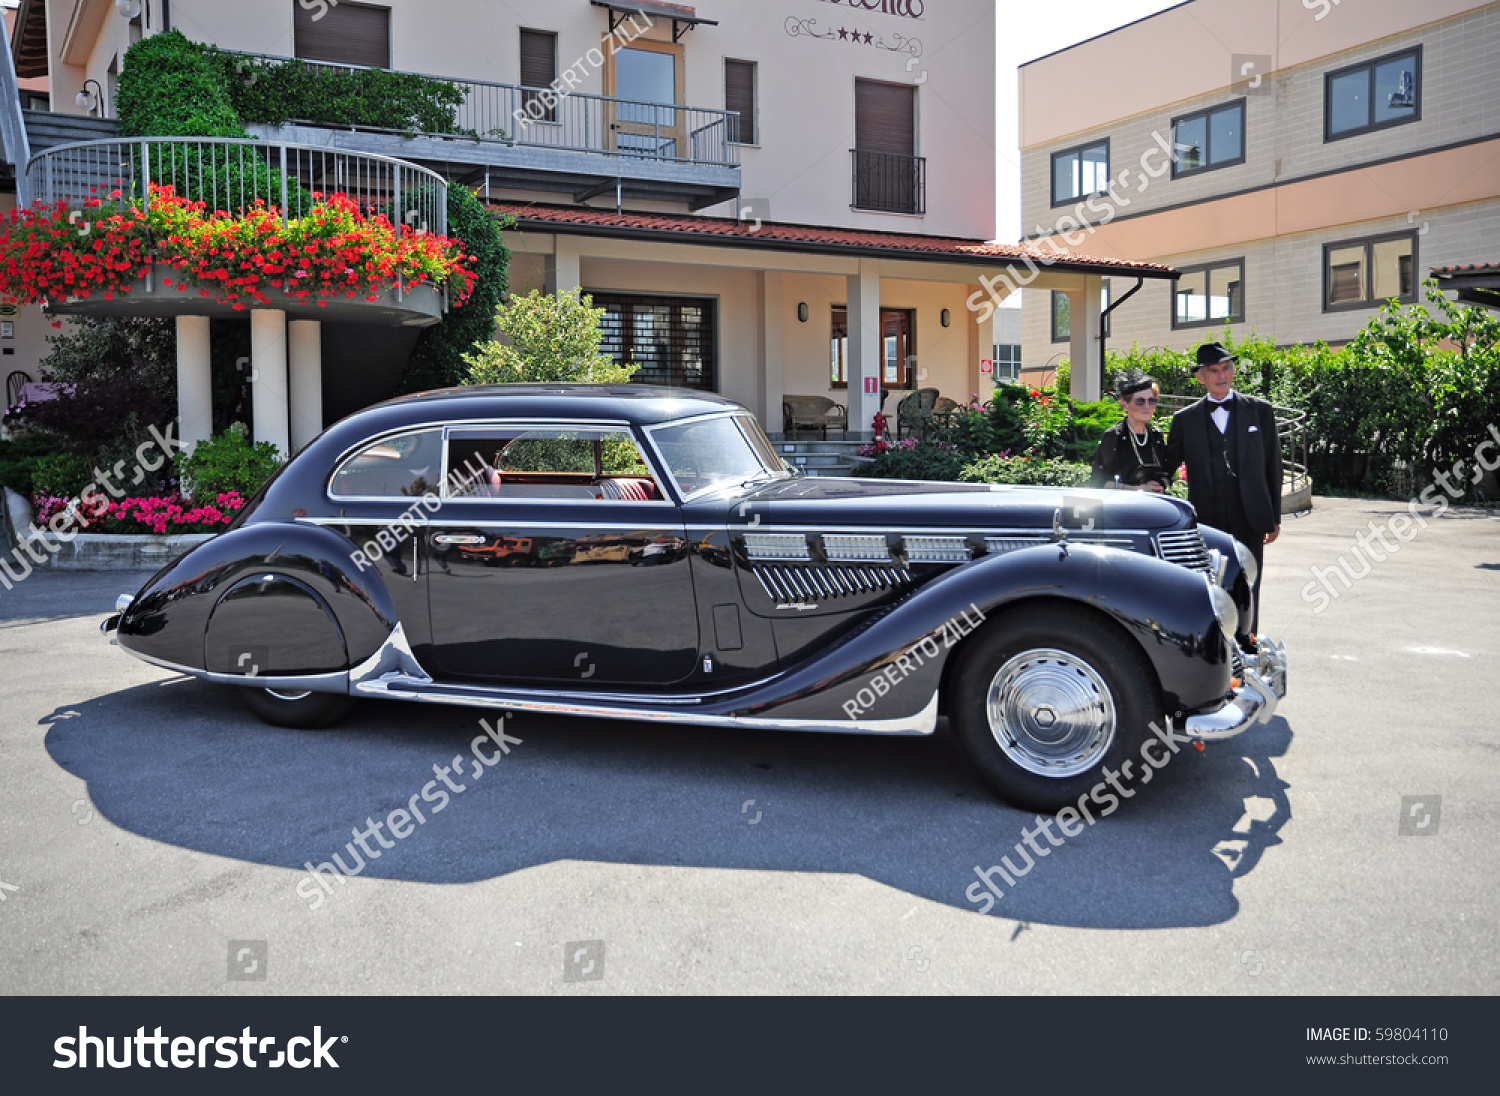 Ceva Cn August 21 Vintage Car Stock Photo (Royalty Free) 59804110 ...